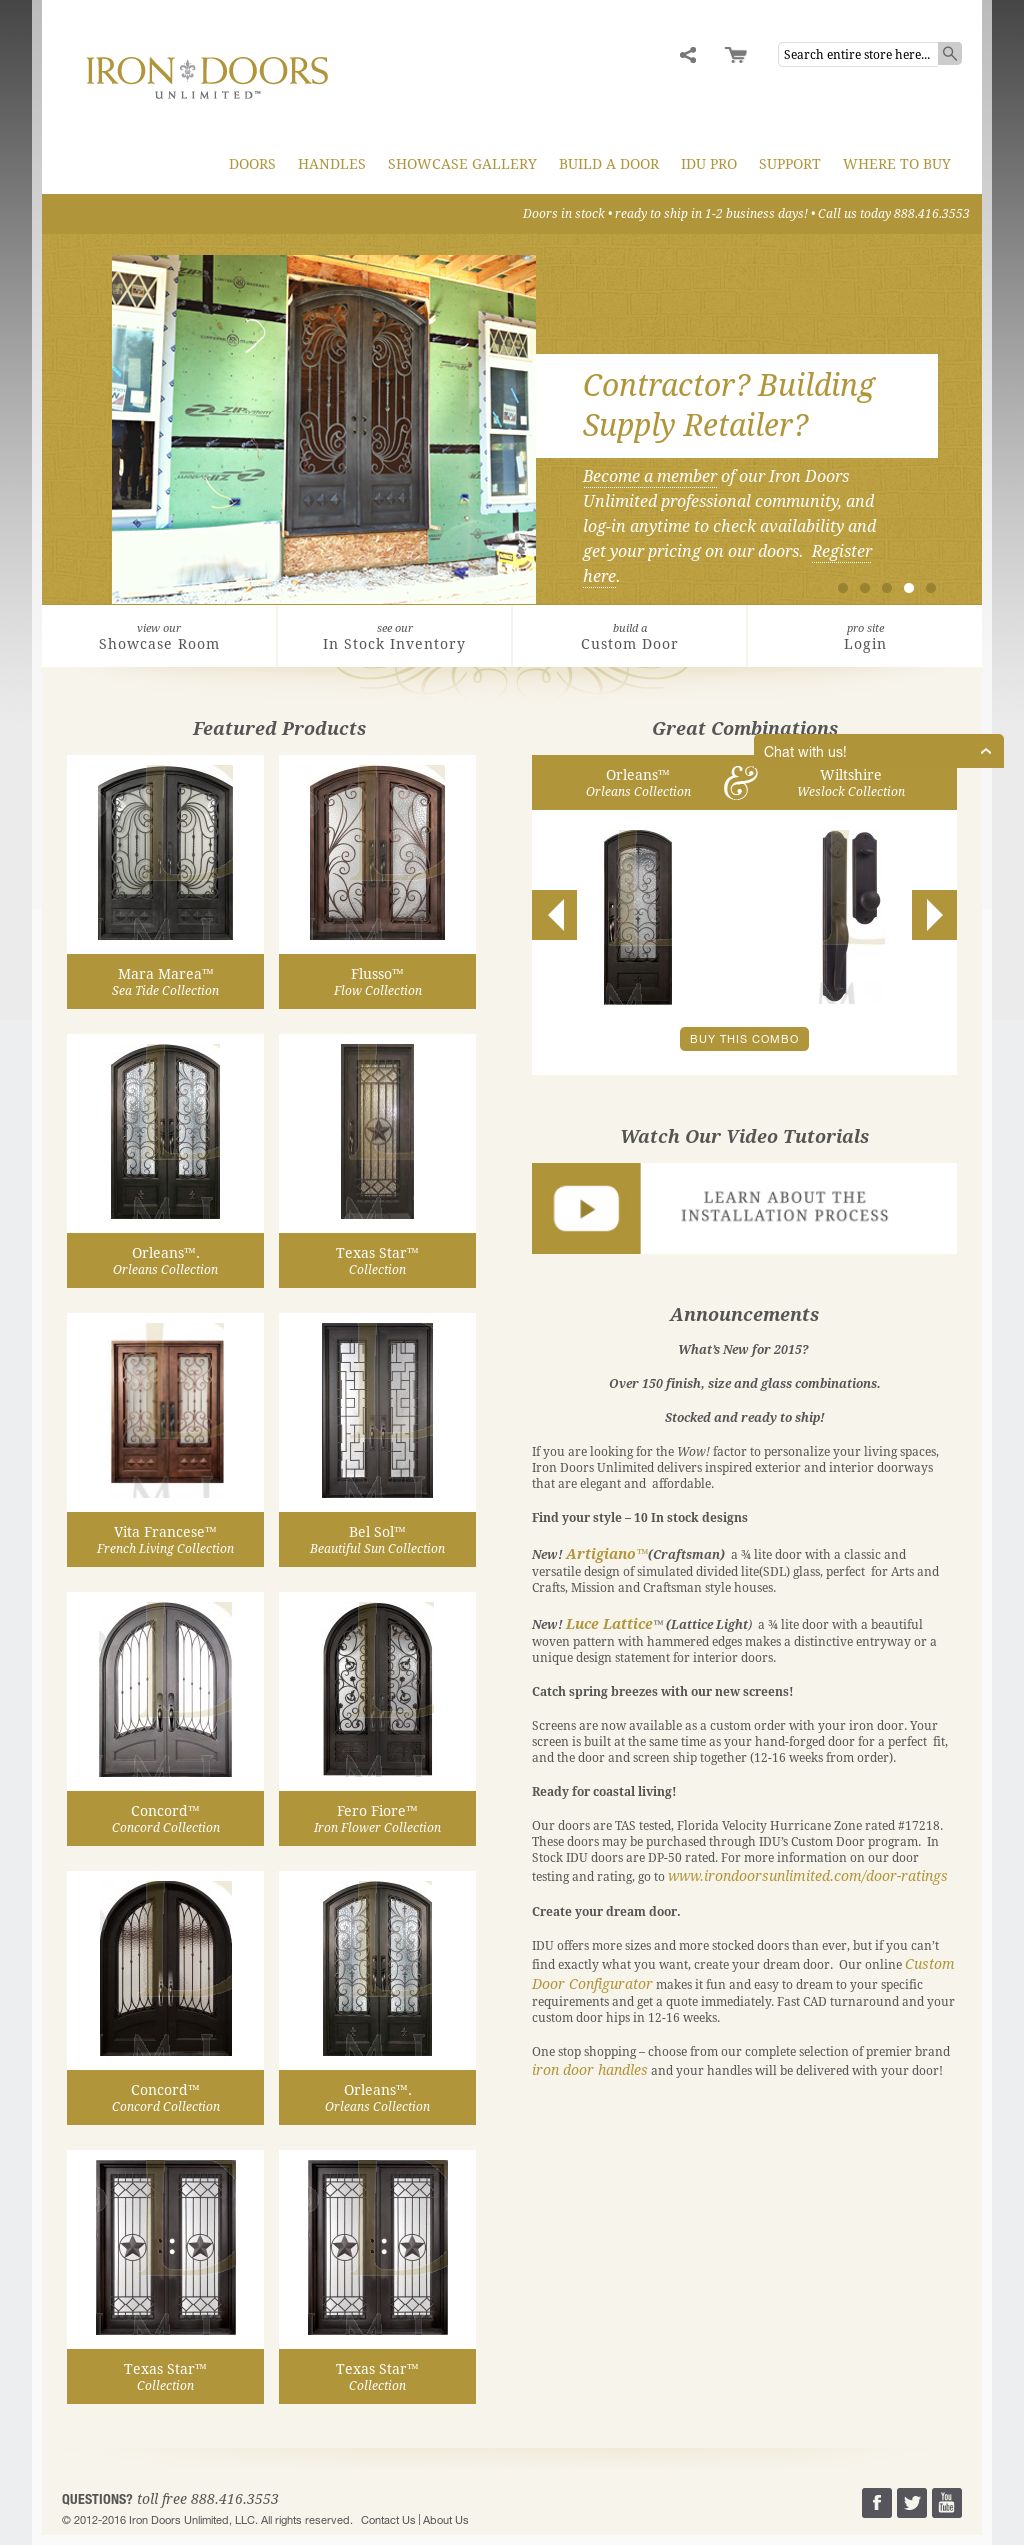 cristo doors monte door ironworks classic bella unlimited iron